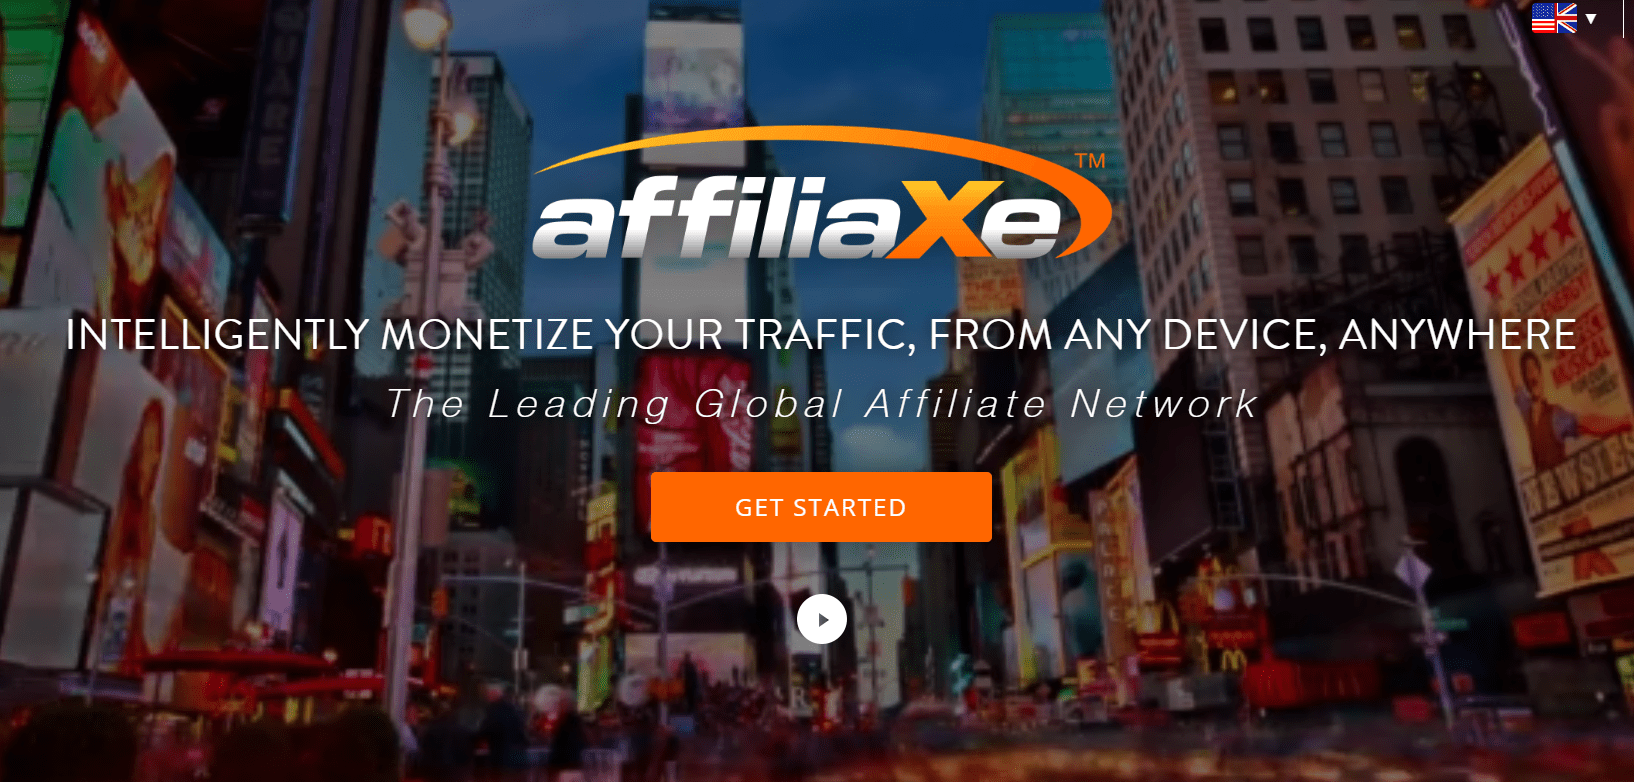 affiliaxe review